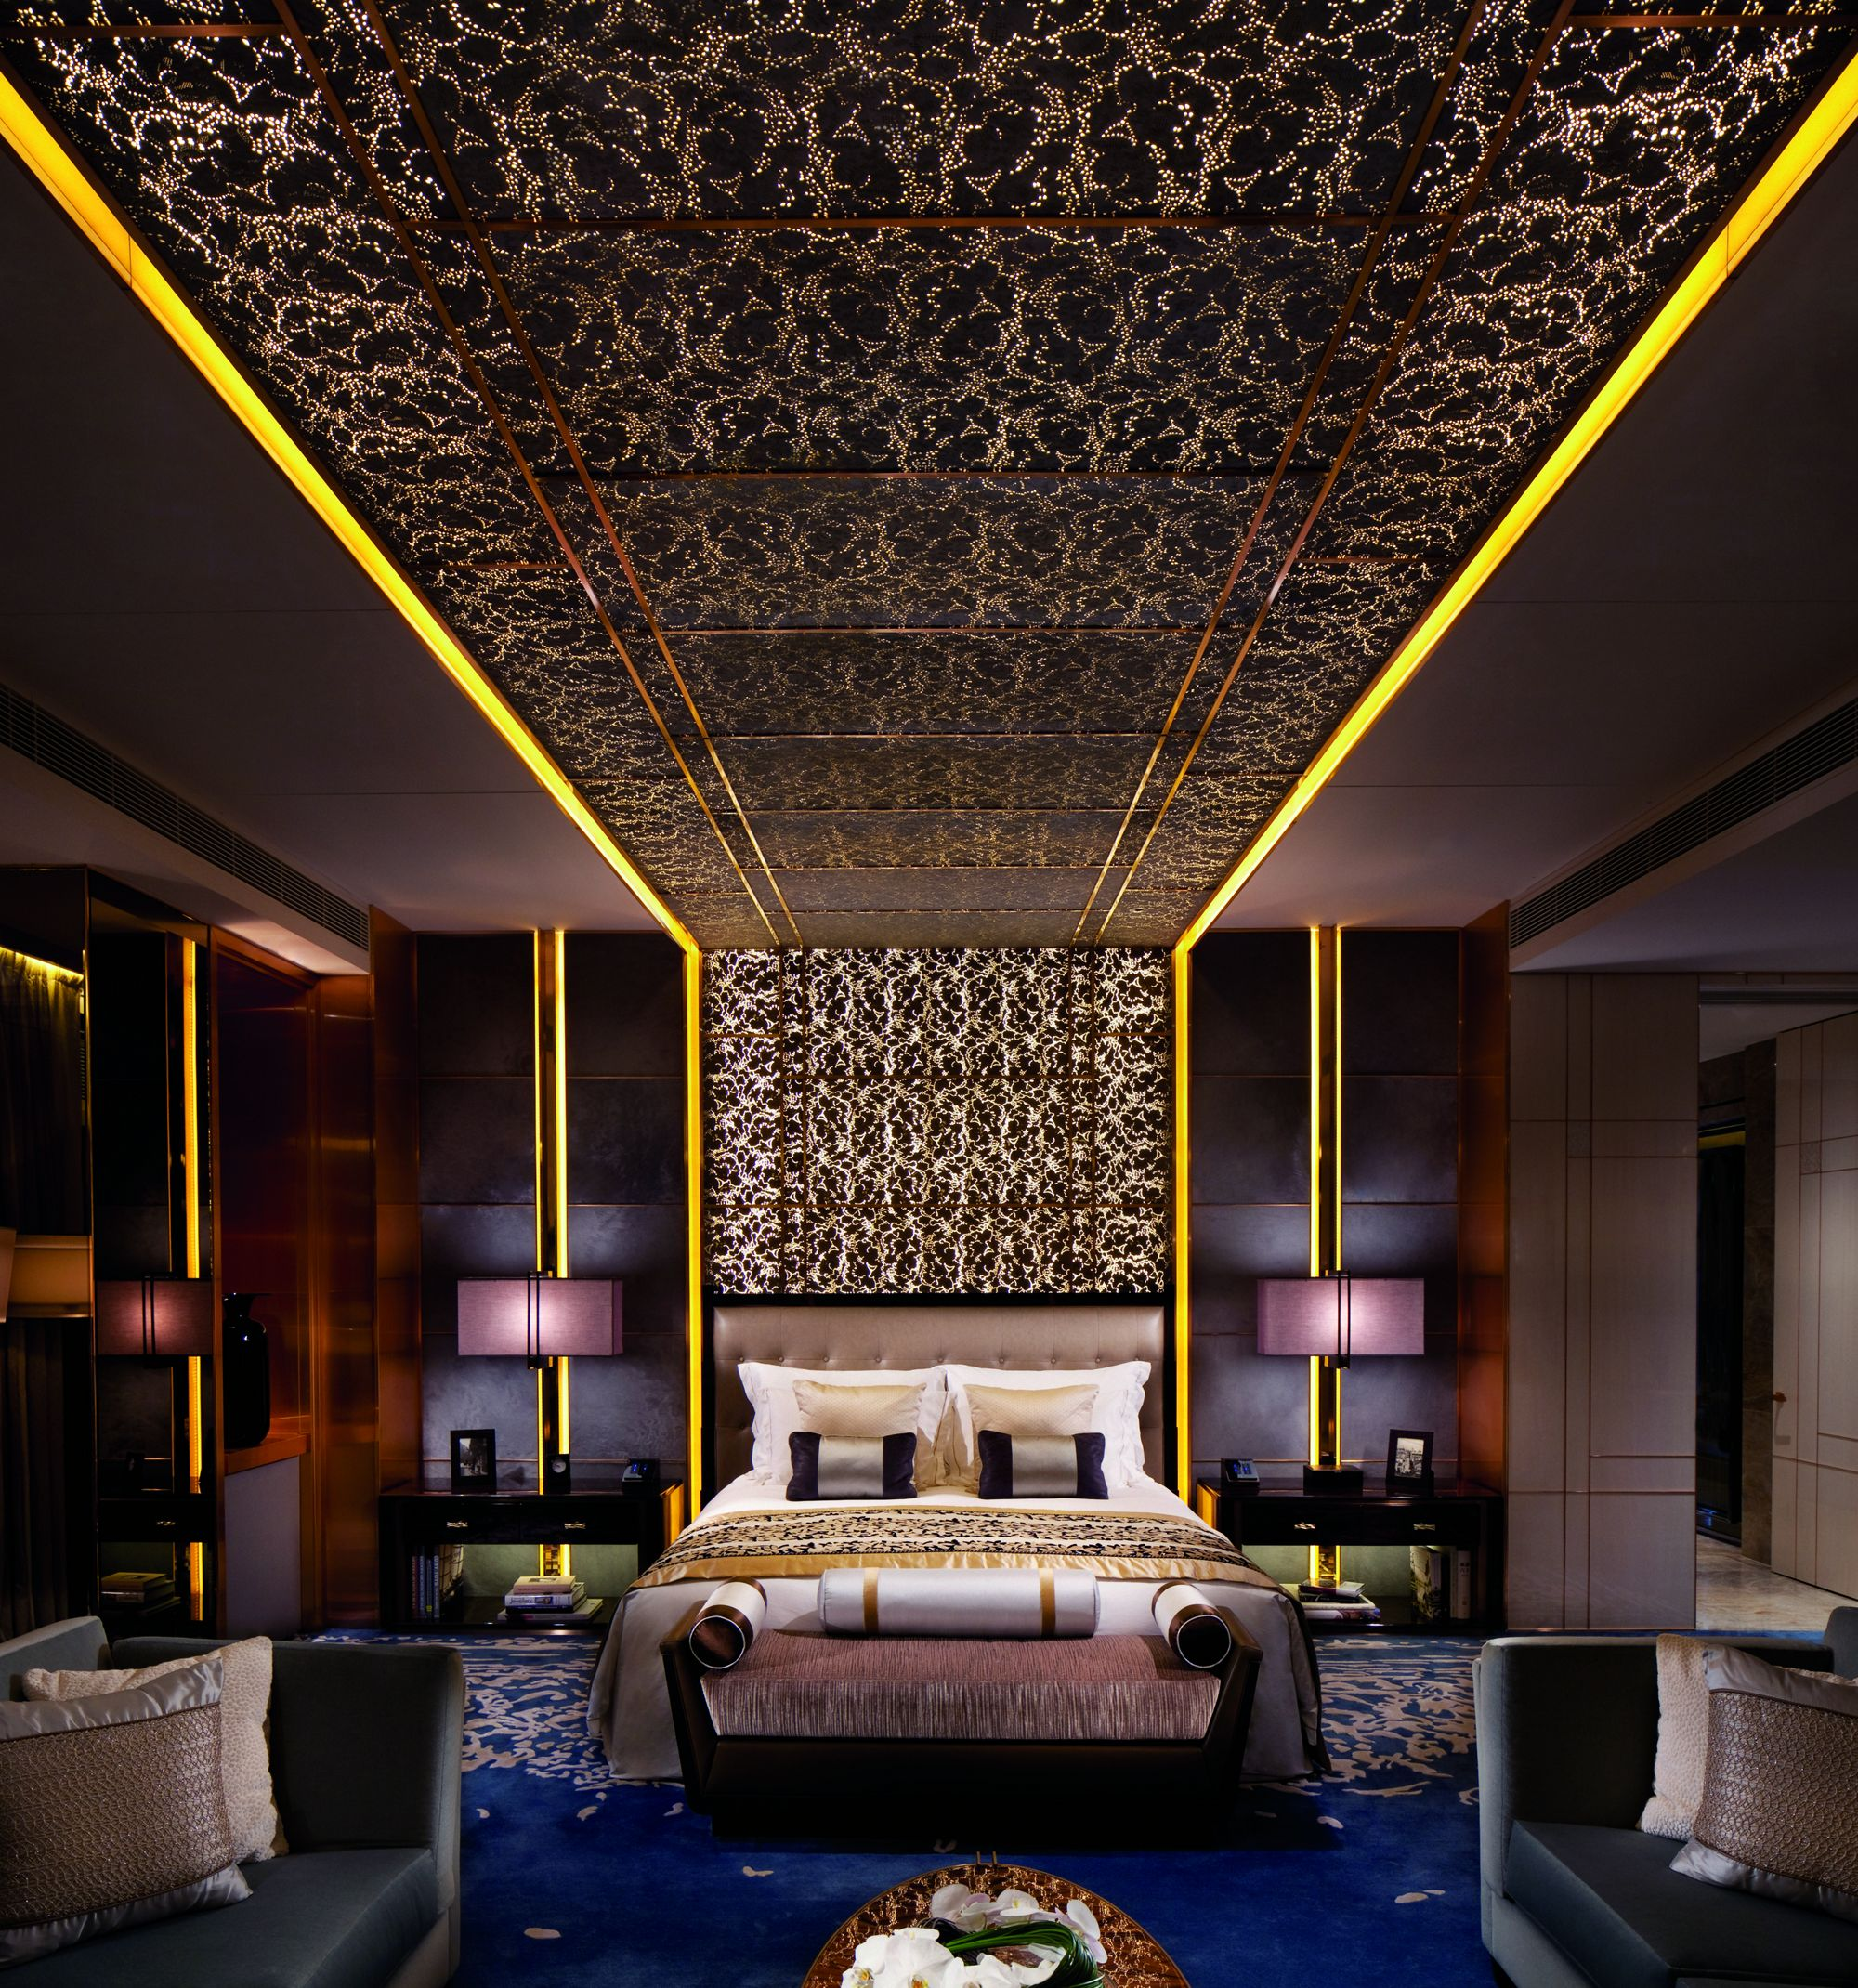 b837fcb8ab229 The Ritz-Carlton Suite - The Ritz-Carlton Hotel Hong Kong - Top ...